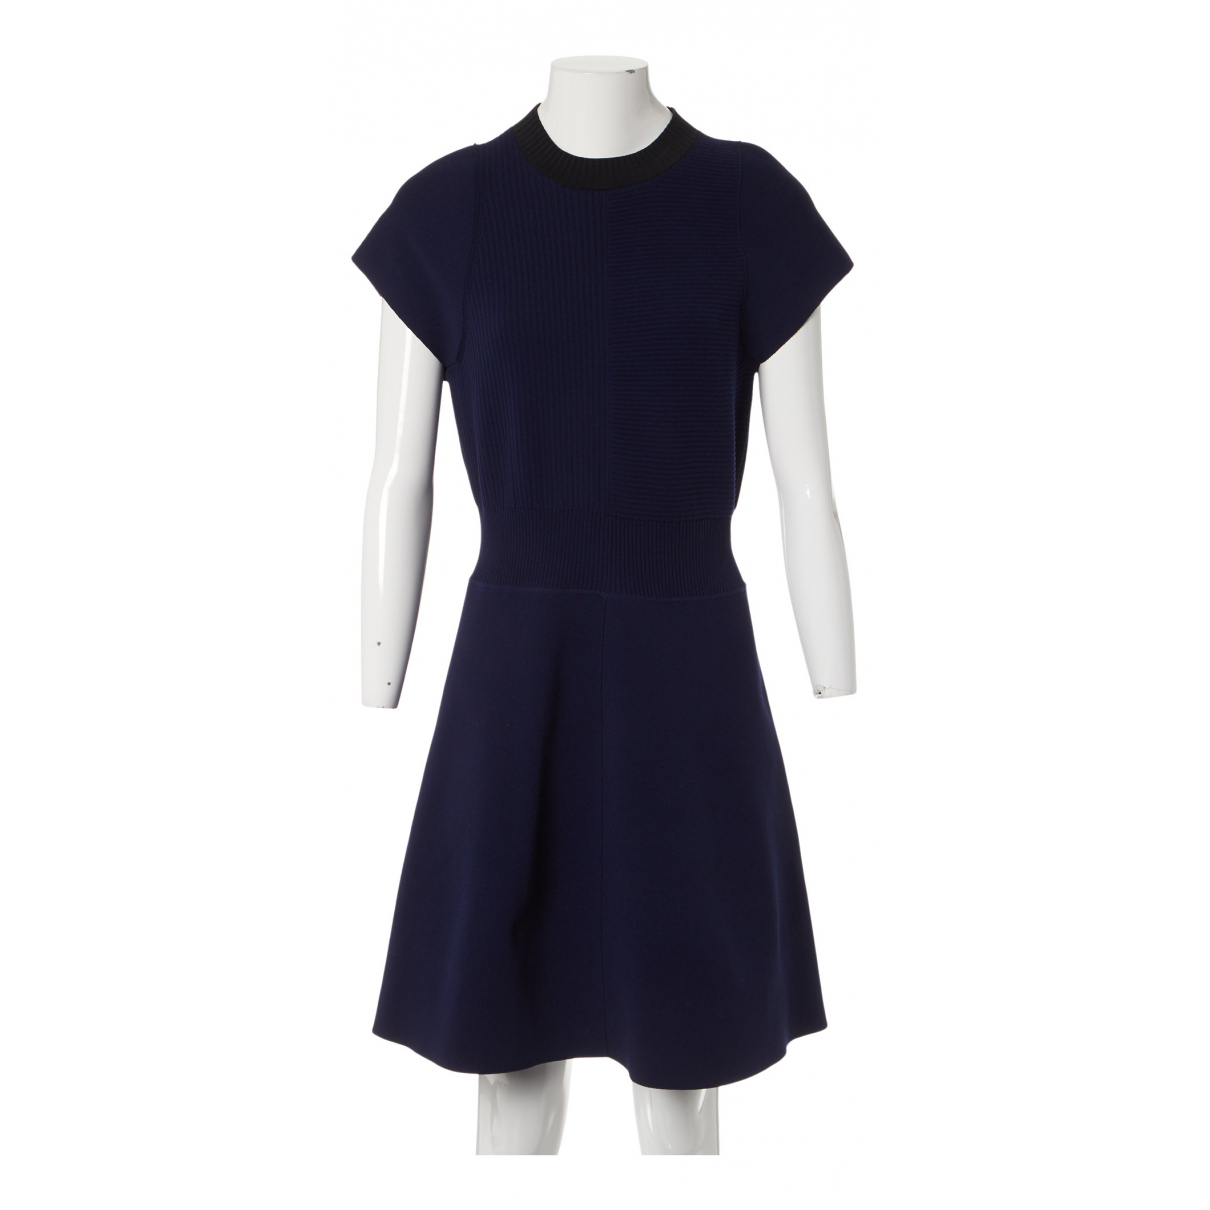 Louis Vuitton \N Kleid in  Marine Polyester